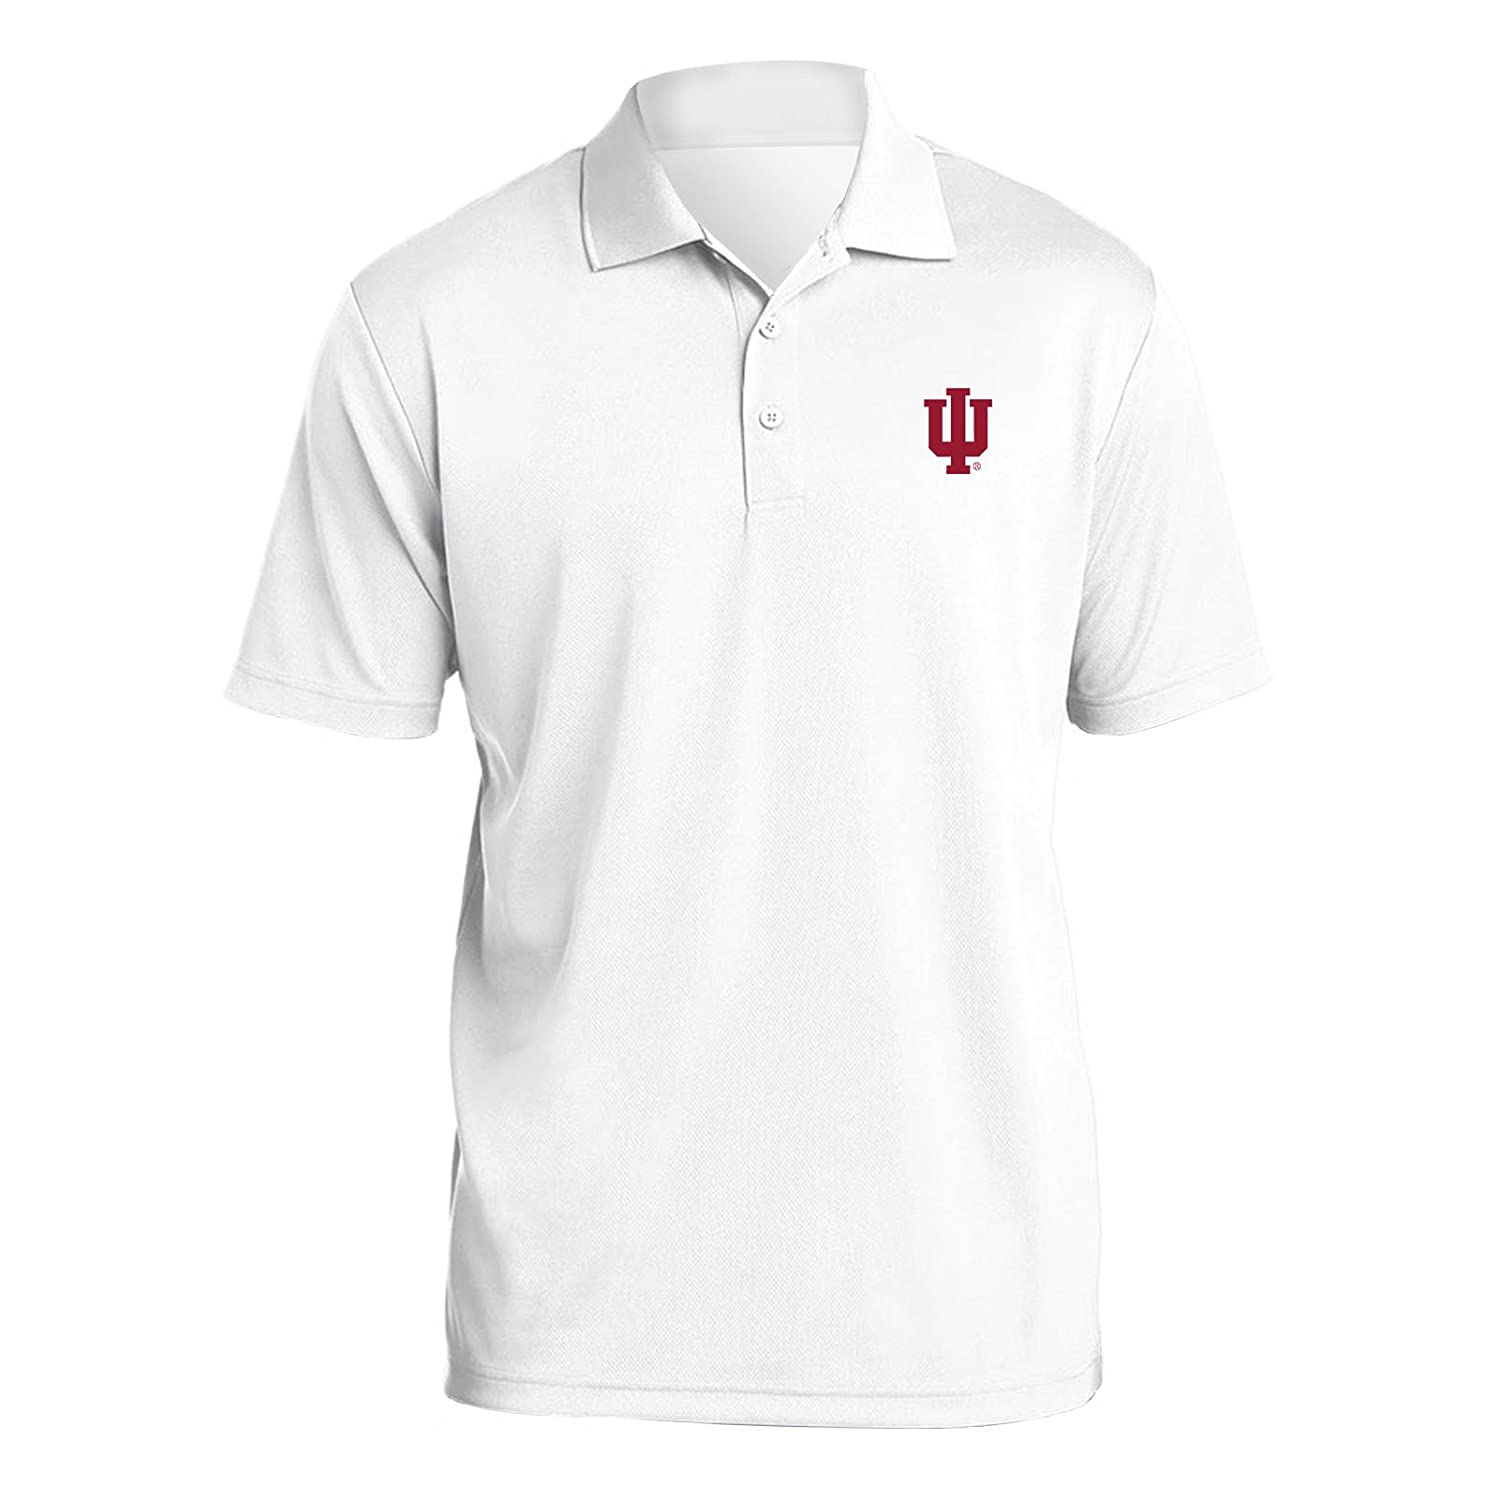 UGP Campus Apparel NCAA Primary Logo, Team Color Polo, College, University